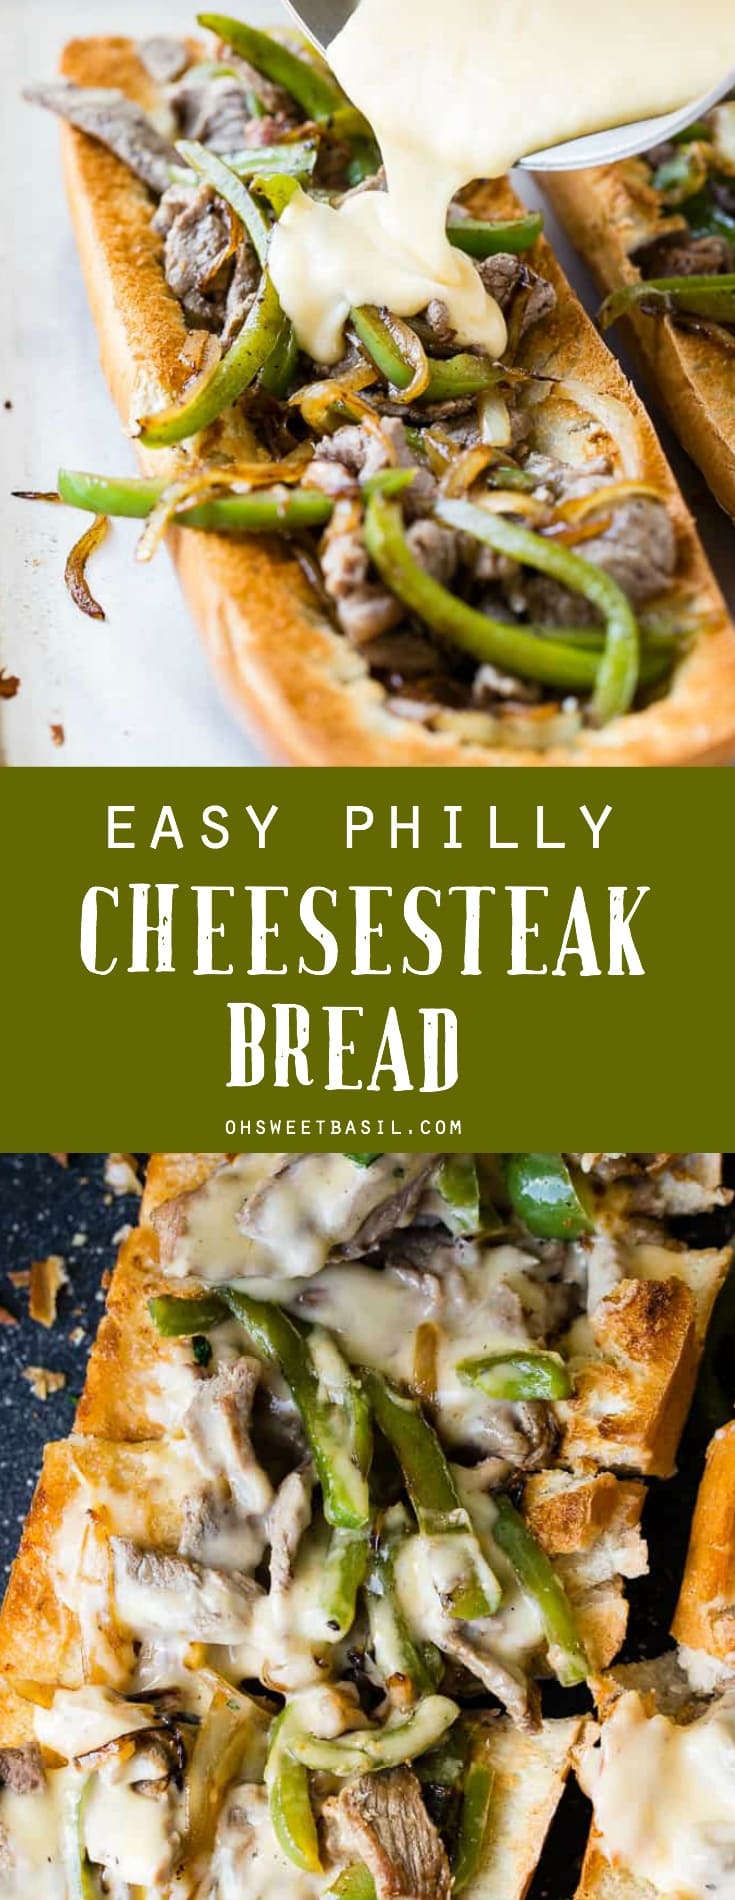 a french bread sliced open and filled with peppers, onions, steak and cheese sauce to make an easy philly cheesesteak recipe!